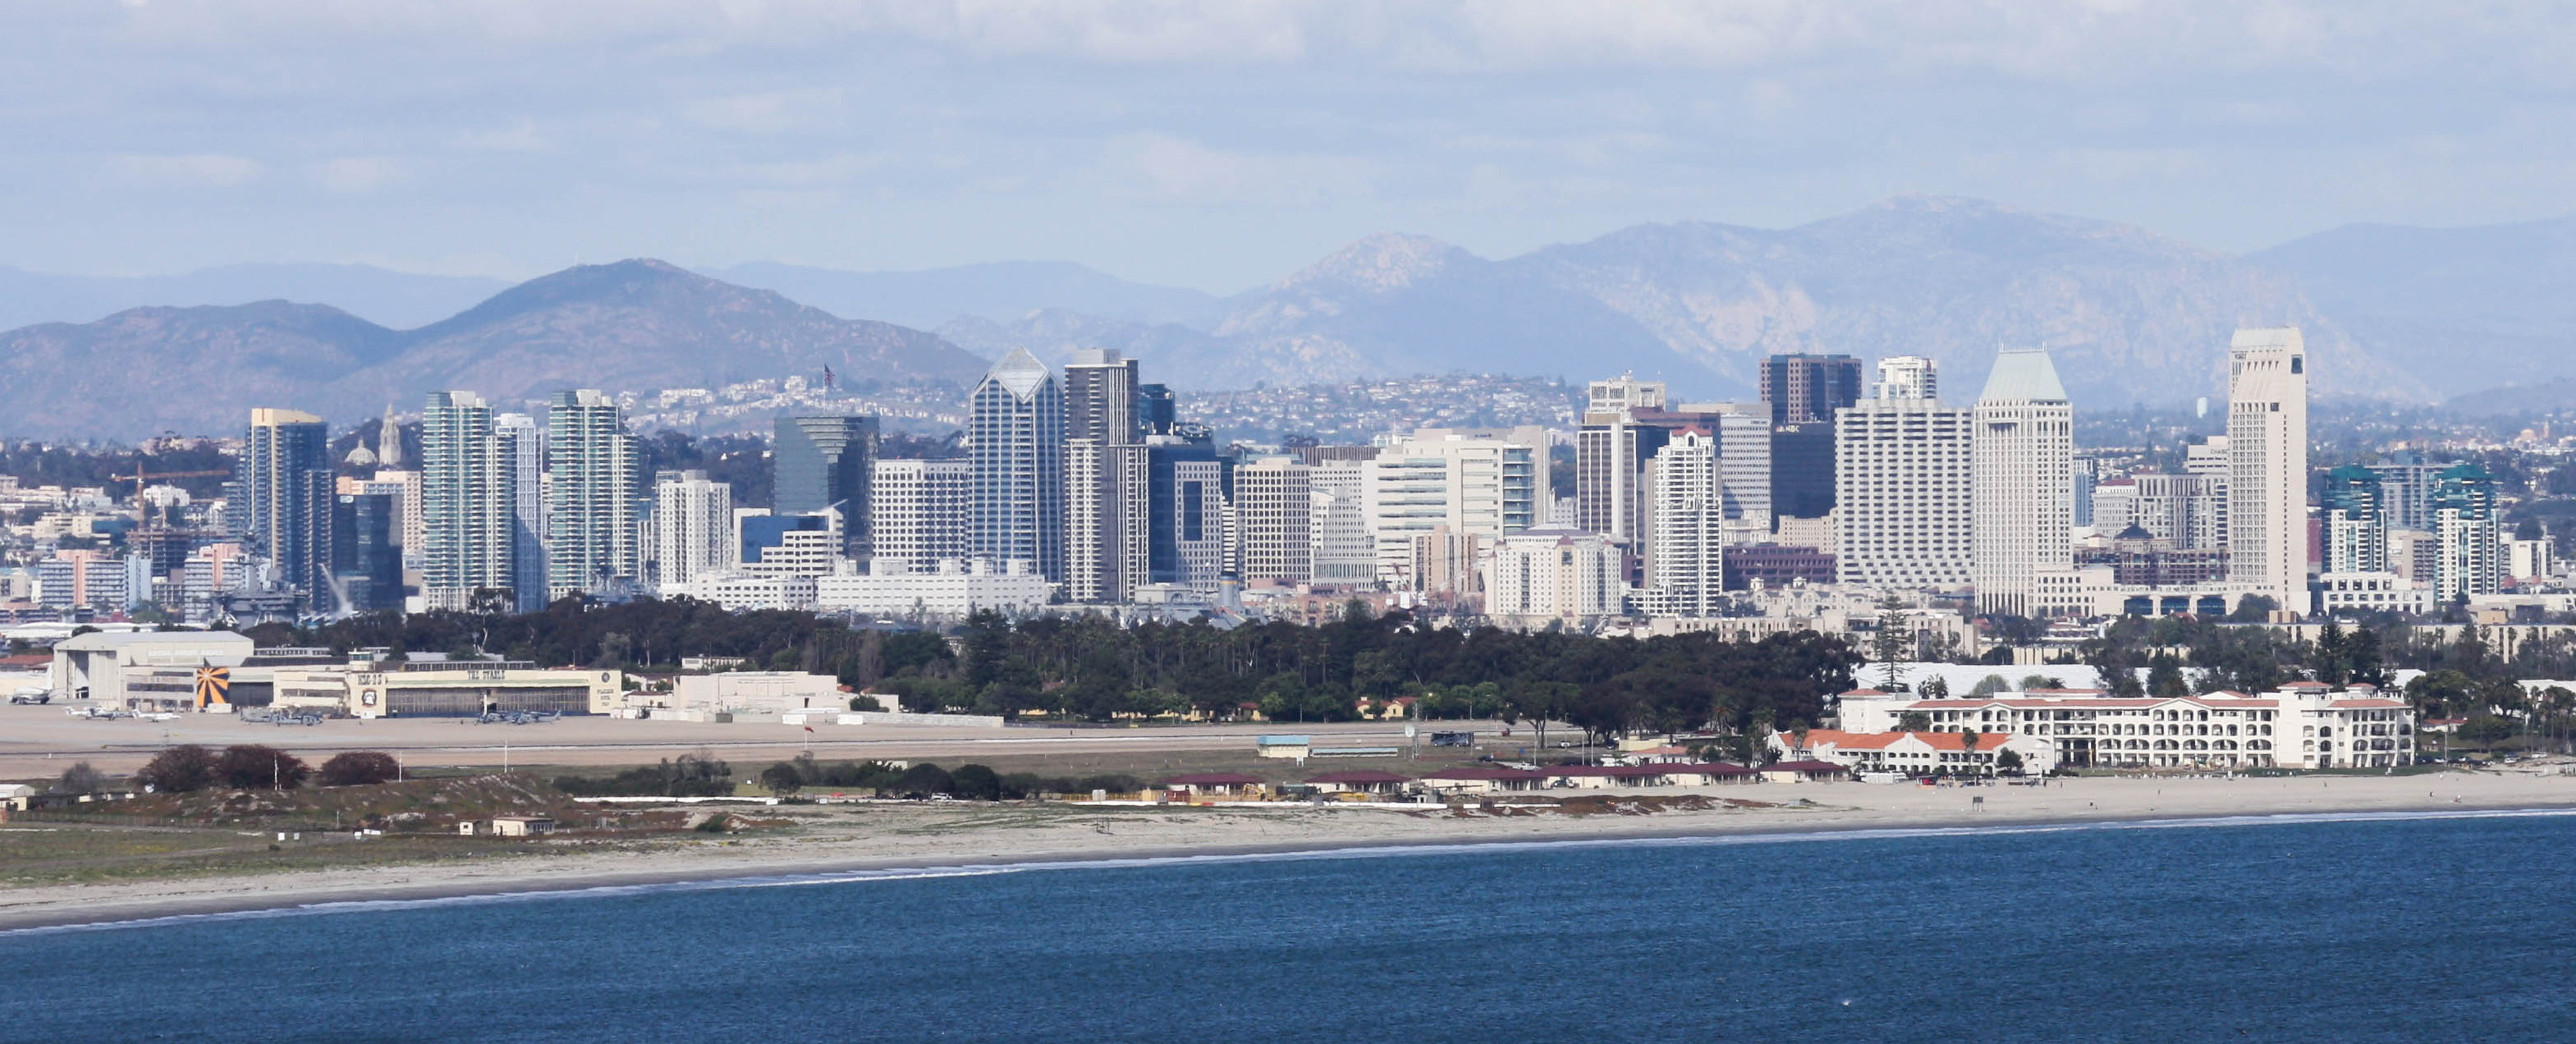 Downtown_San_Diego_02